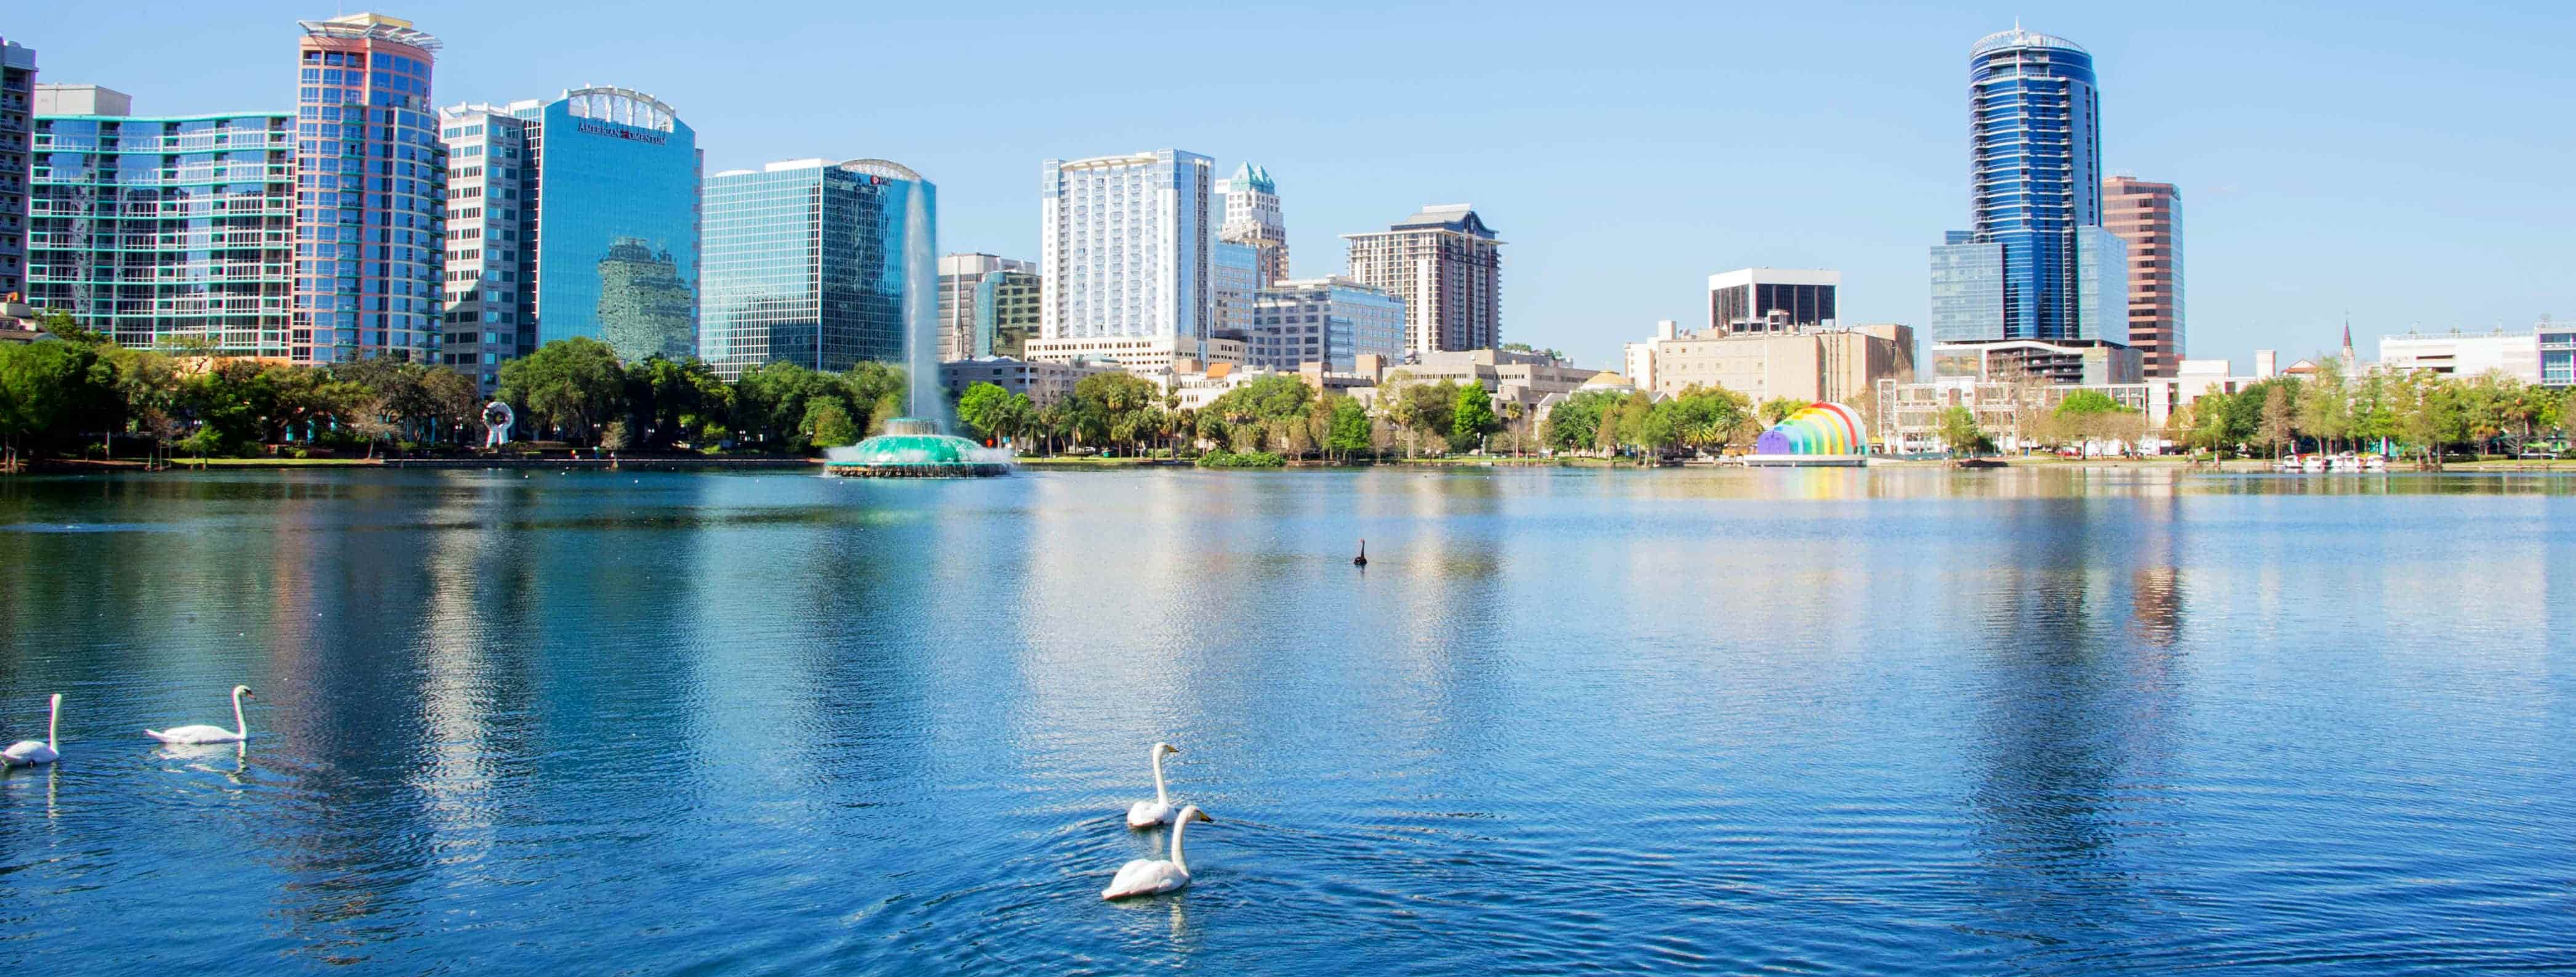 Home - City of Orlando